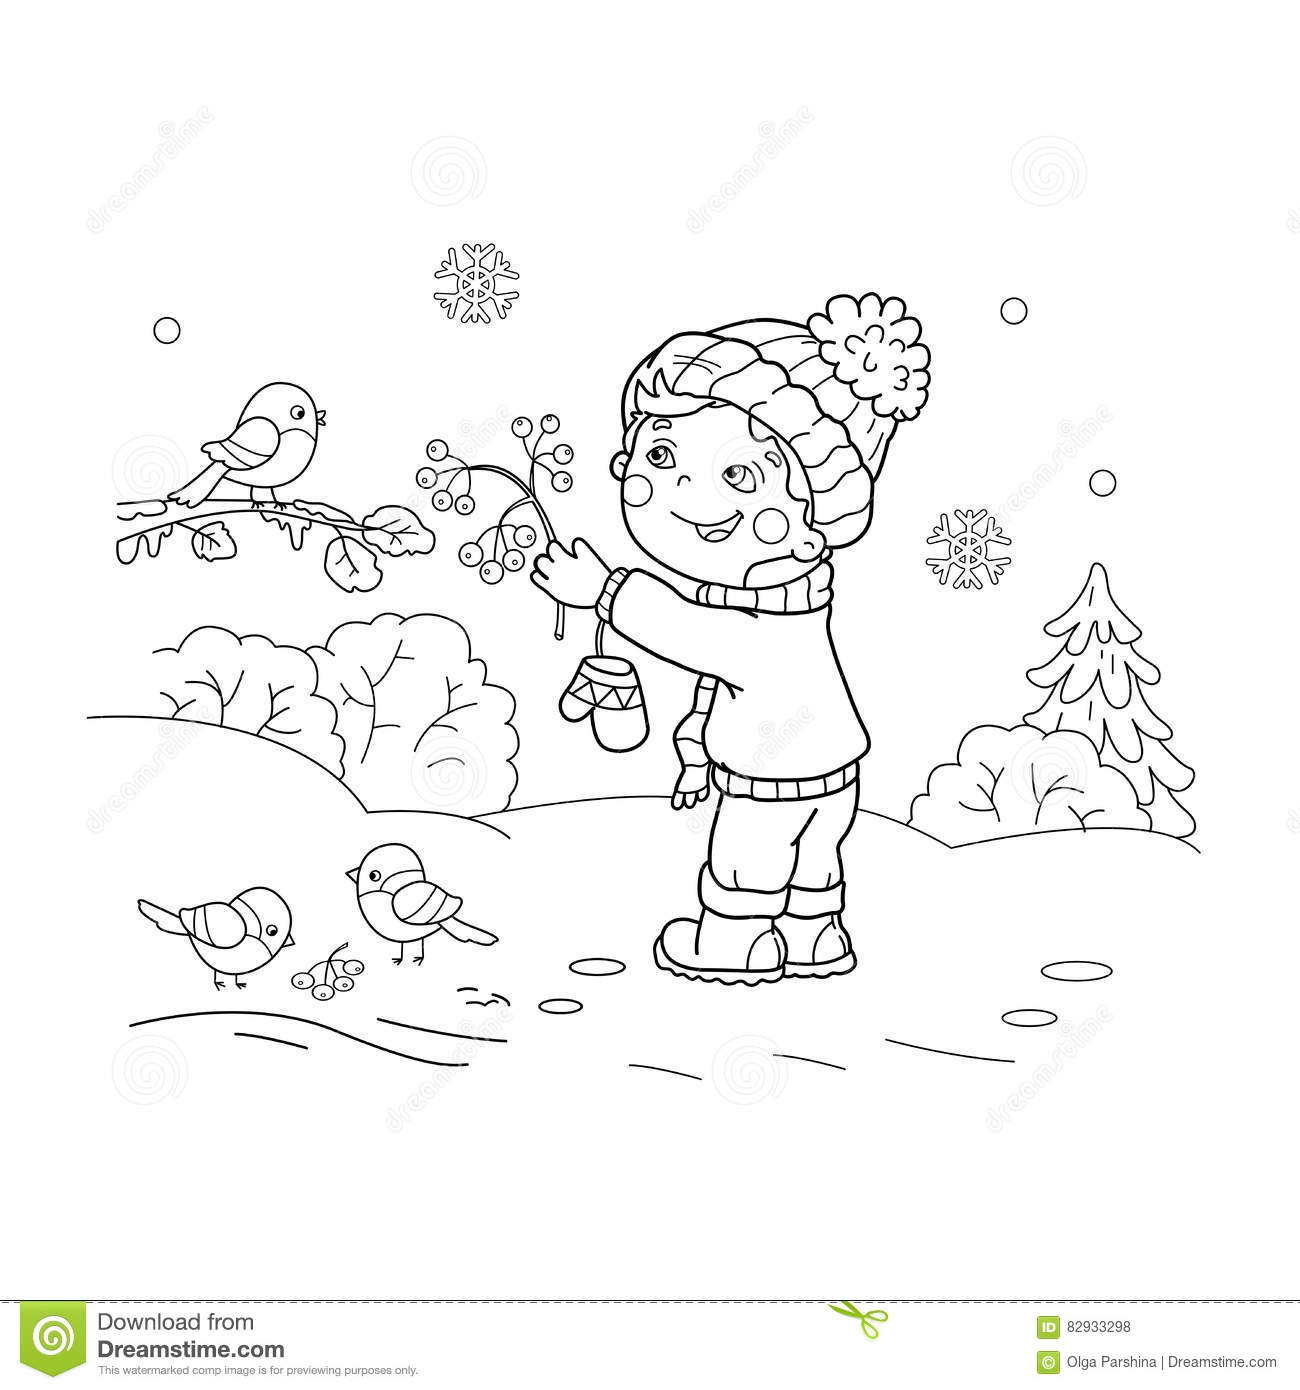 Download Coloring Page Outline Of Cartoon Boy Feeding Birds Stock Vector